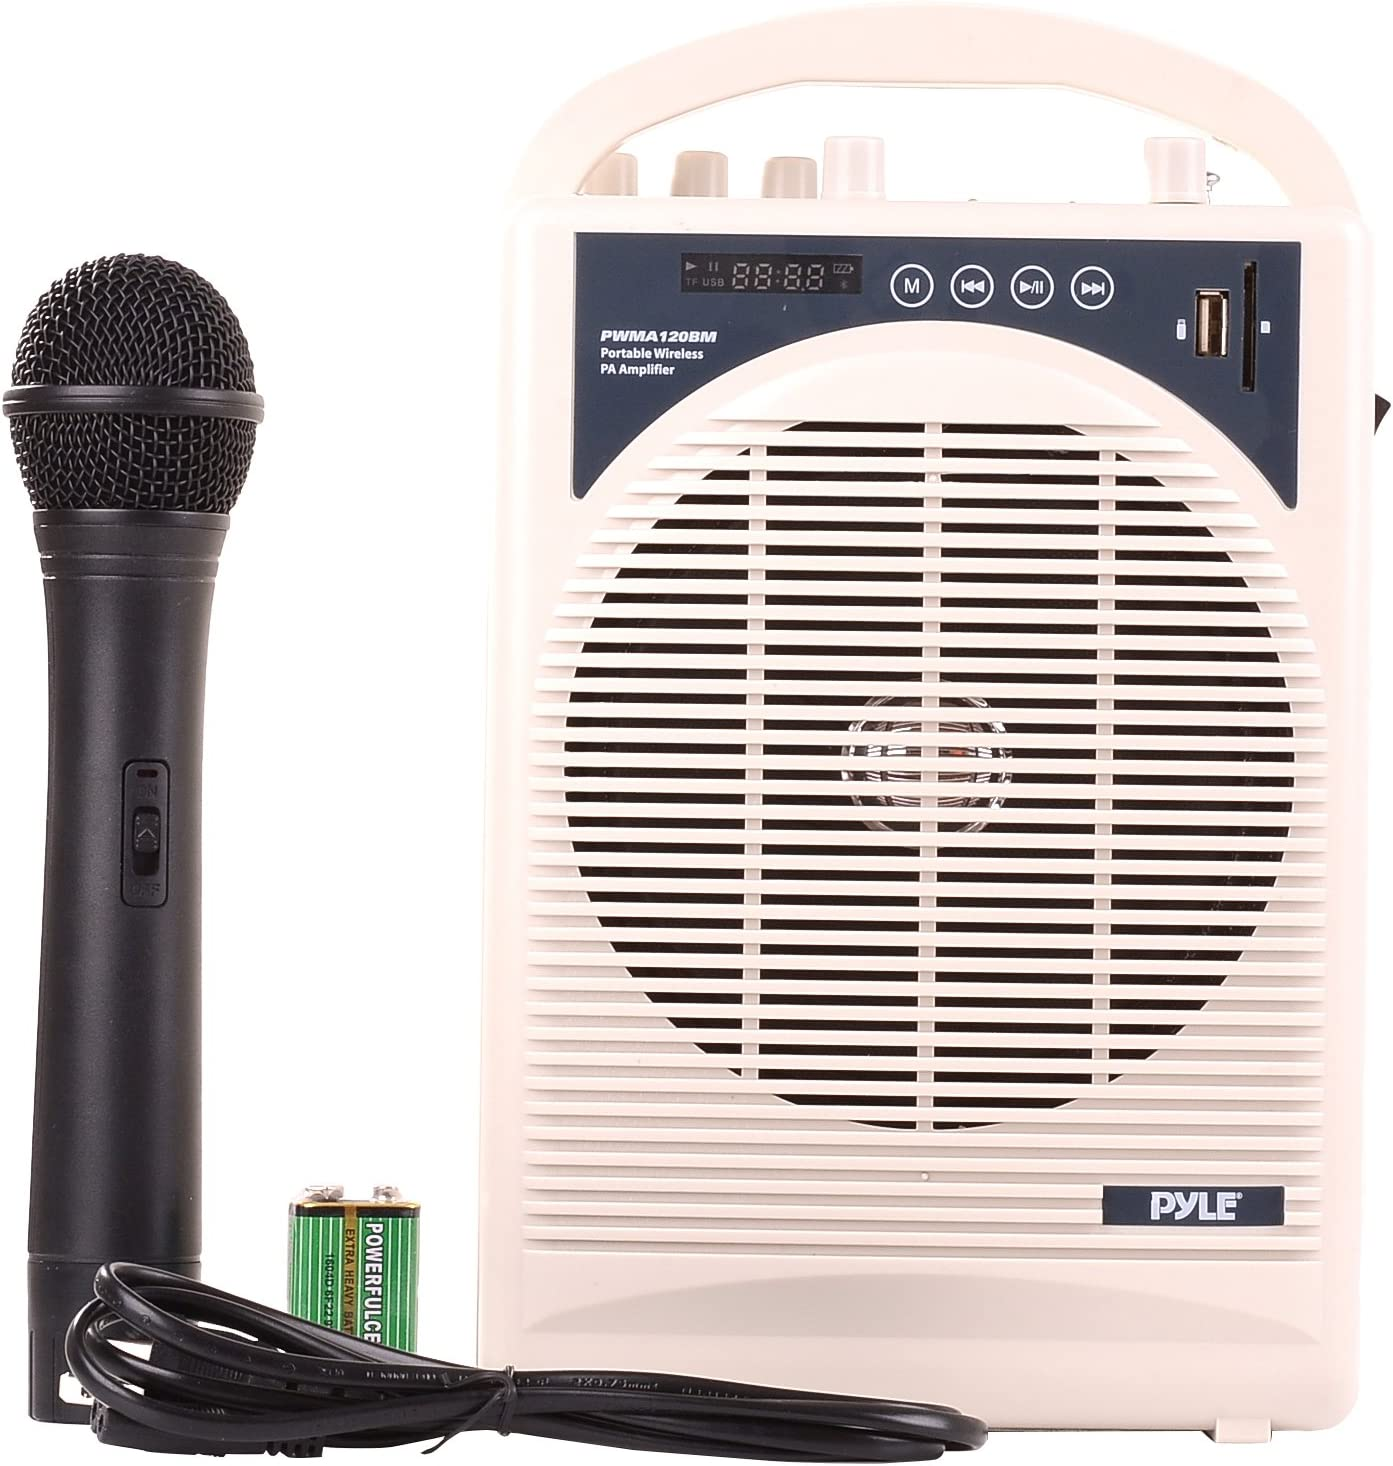 Upgraded Pyle Professional Portable PA System